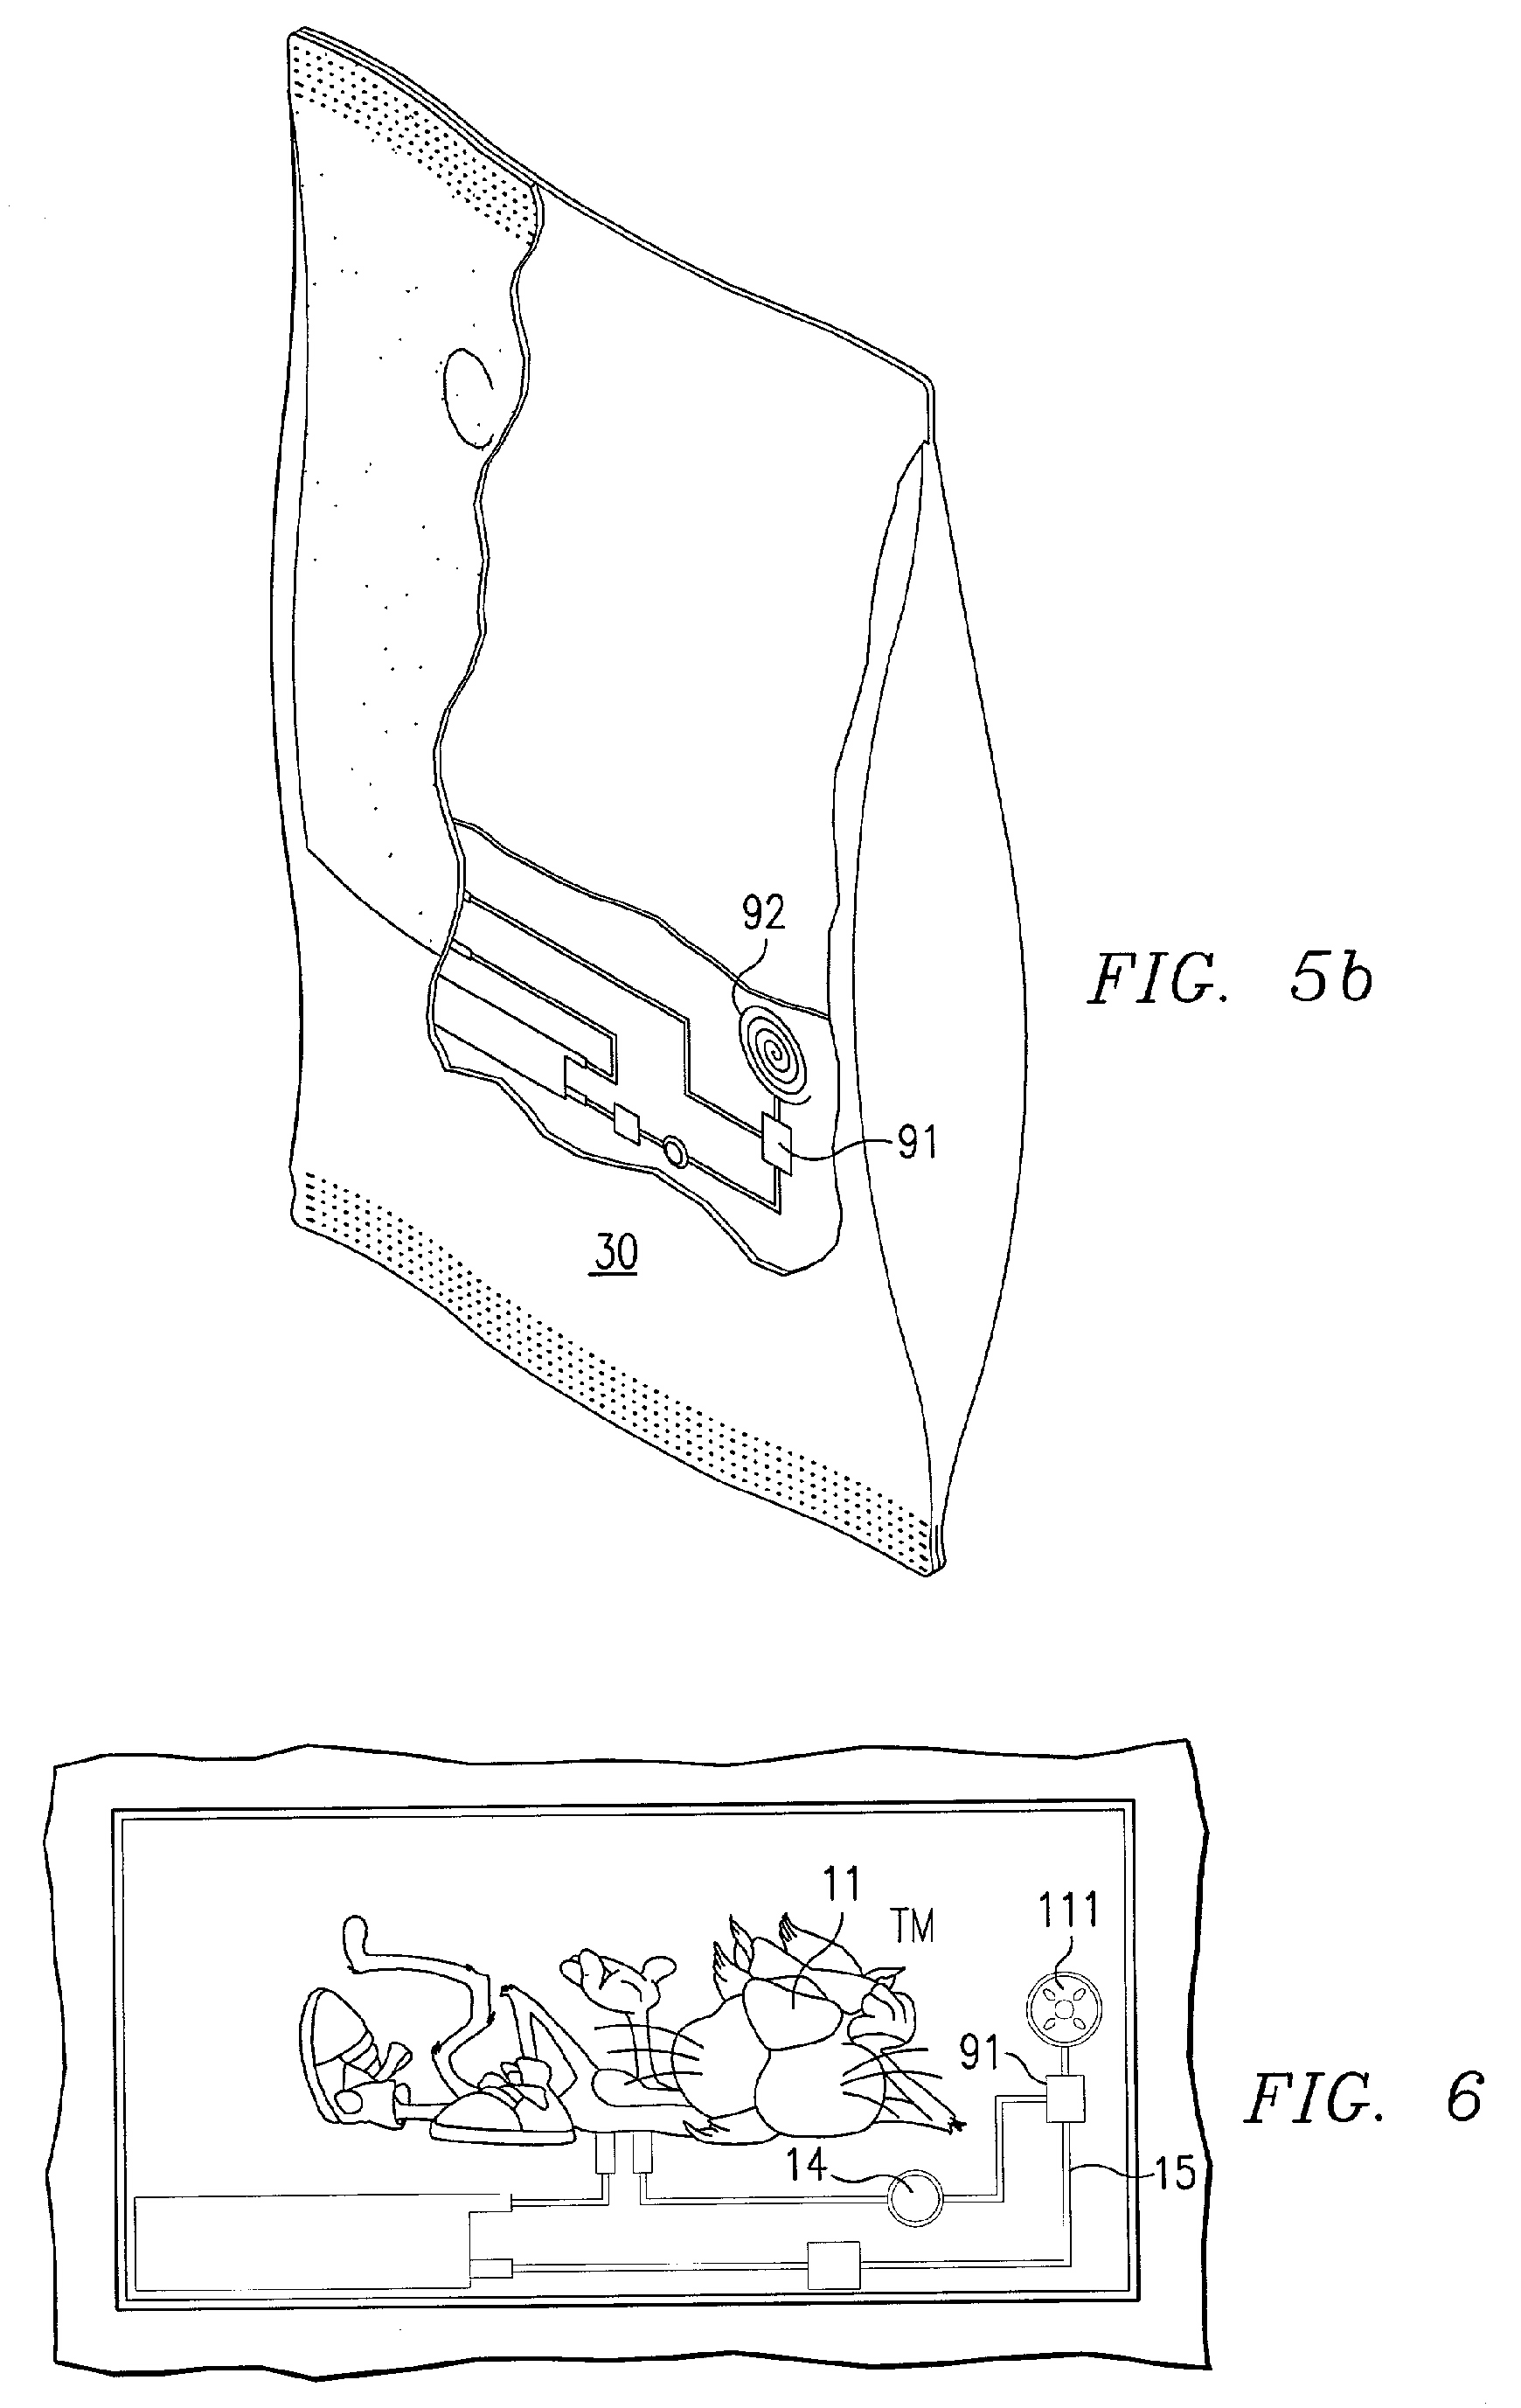 electroluminescent packaging patent